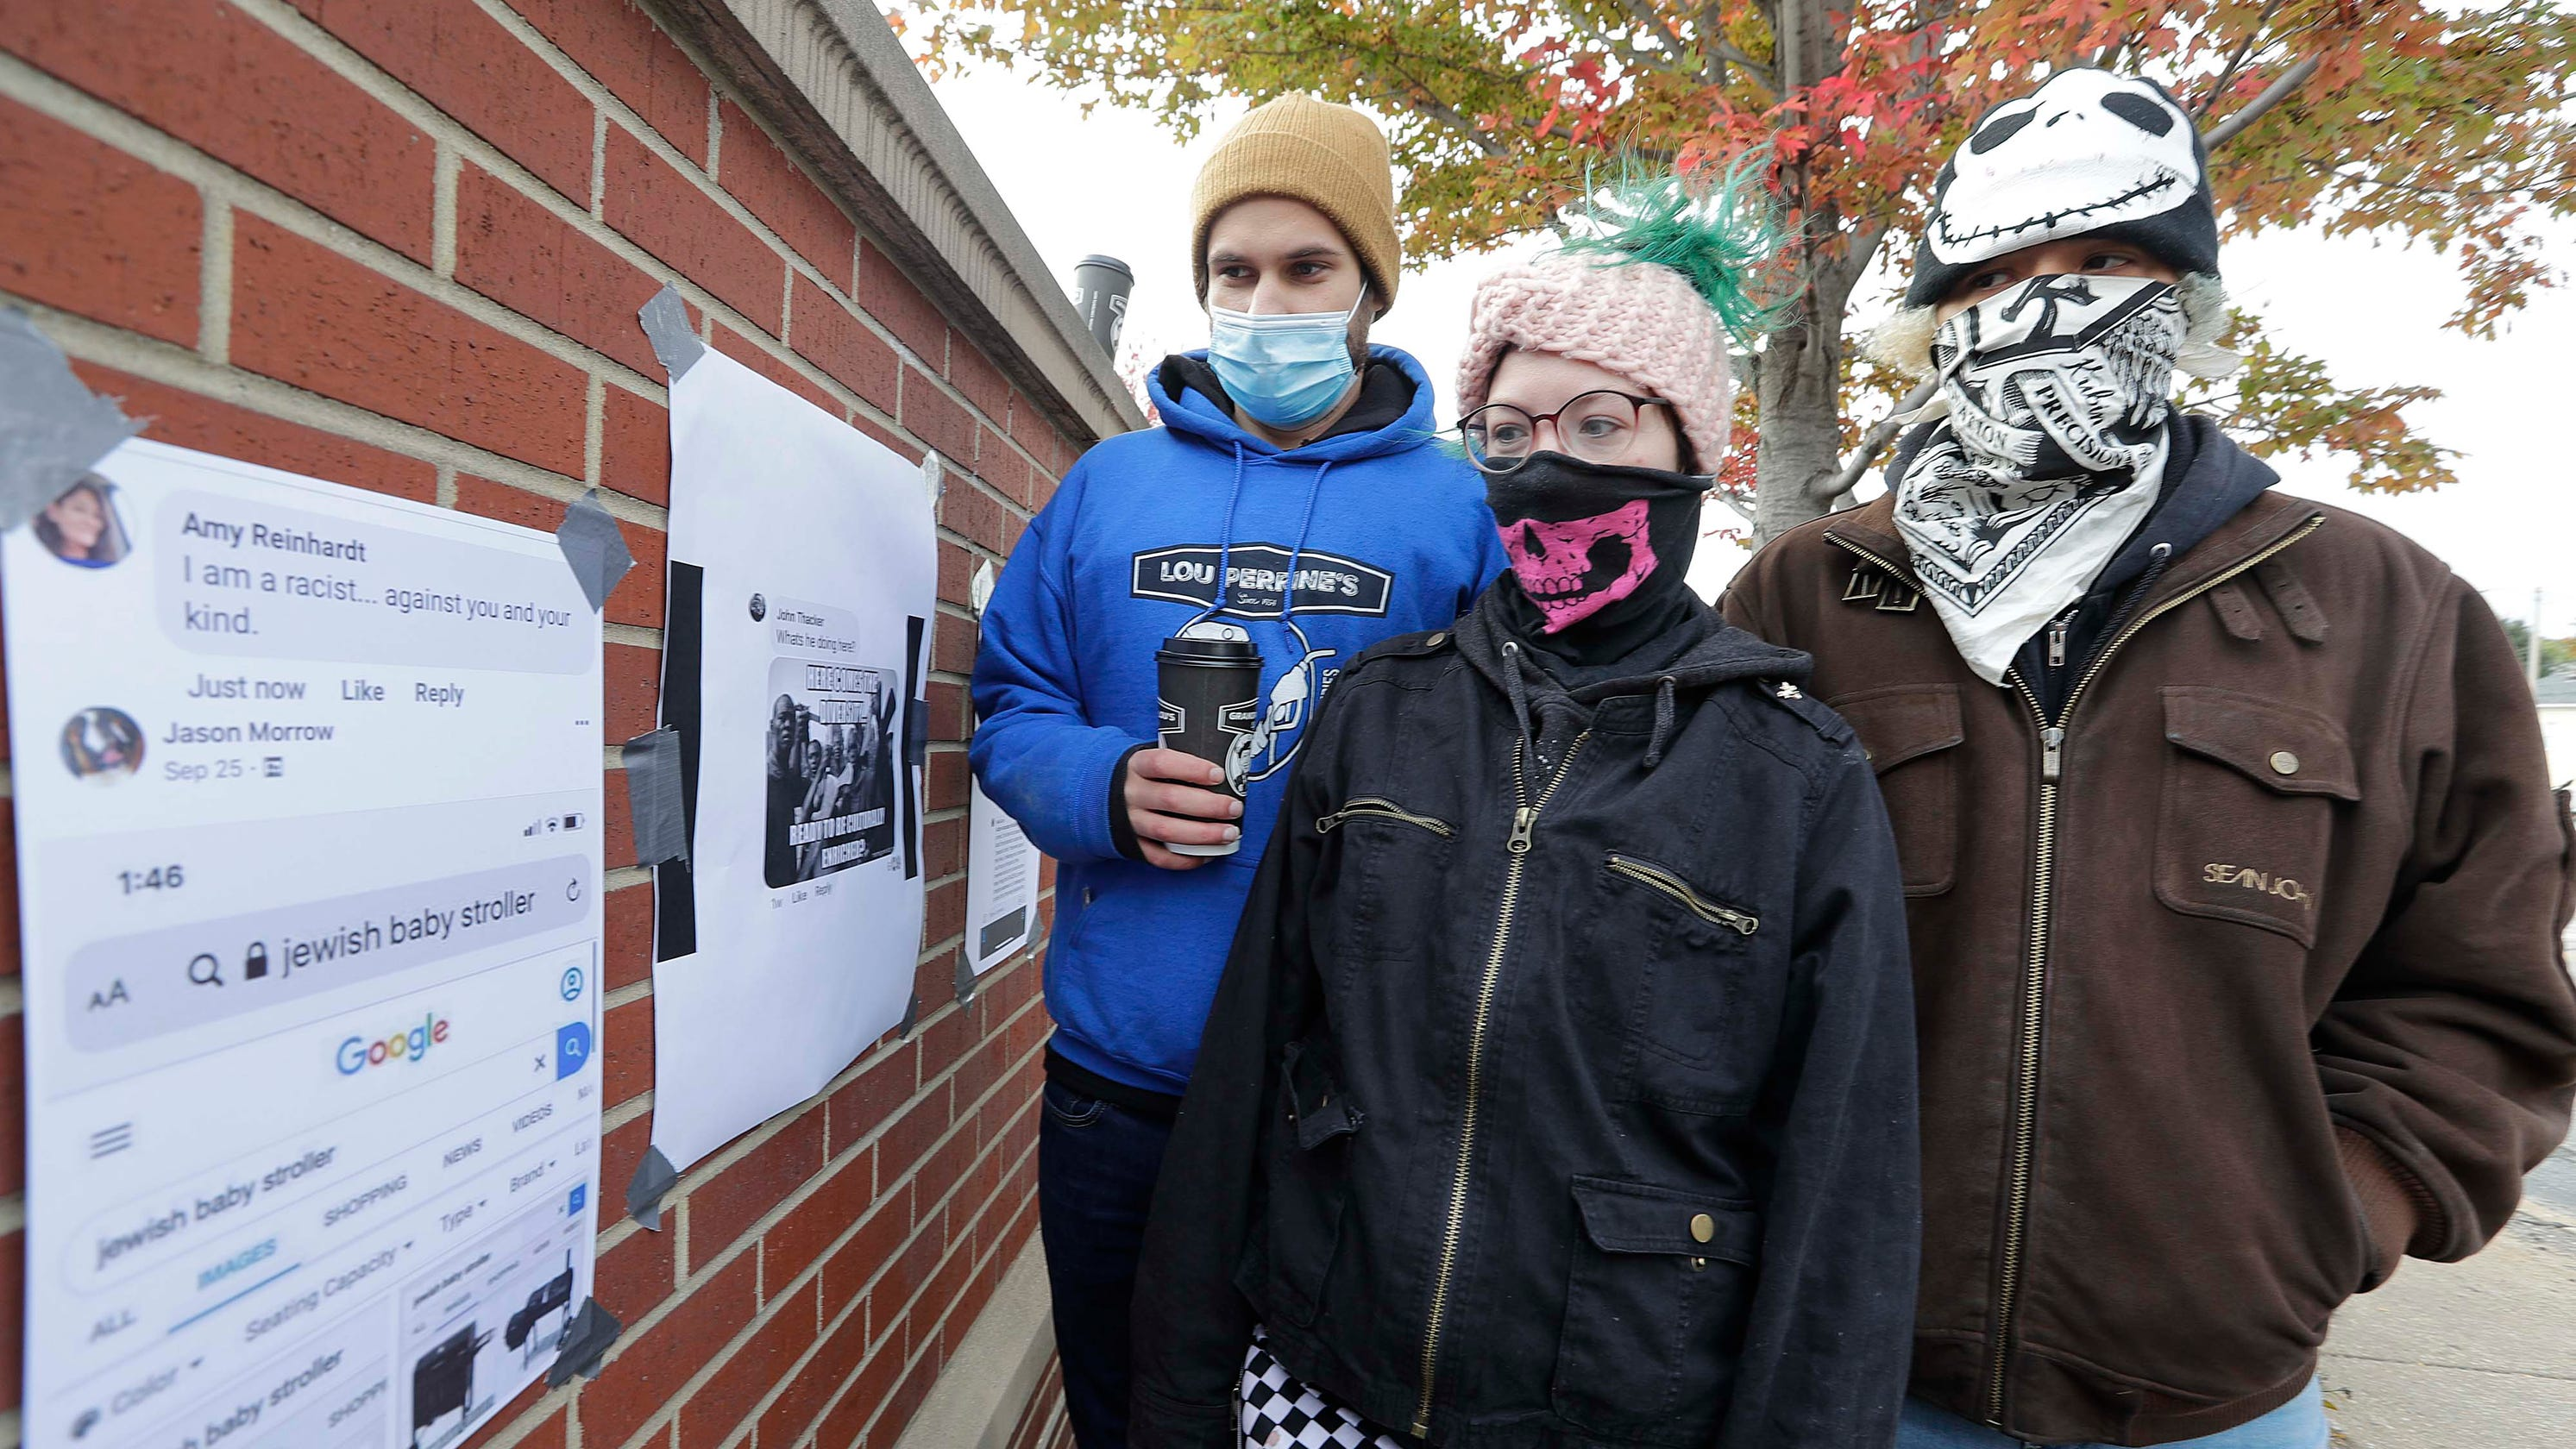 'People get brave behind a keyboard,' real-life Facebook wall created by Kenosha protesters from disturbing posts